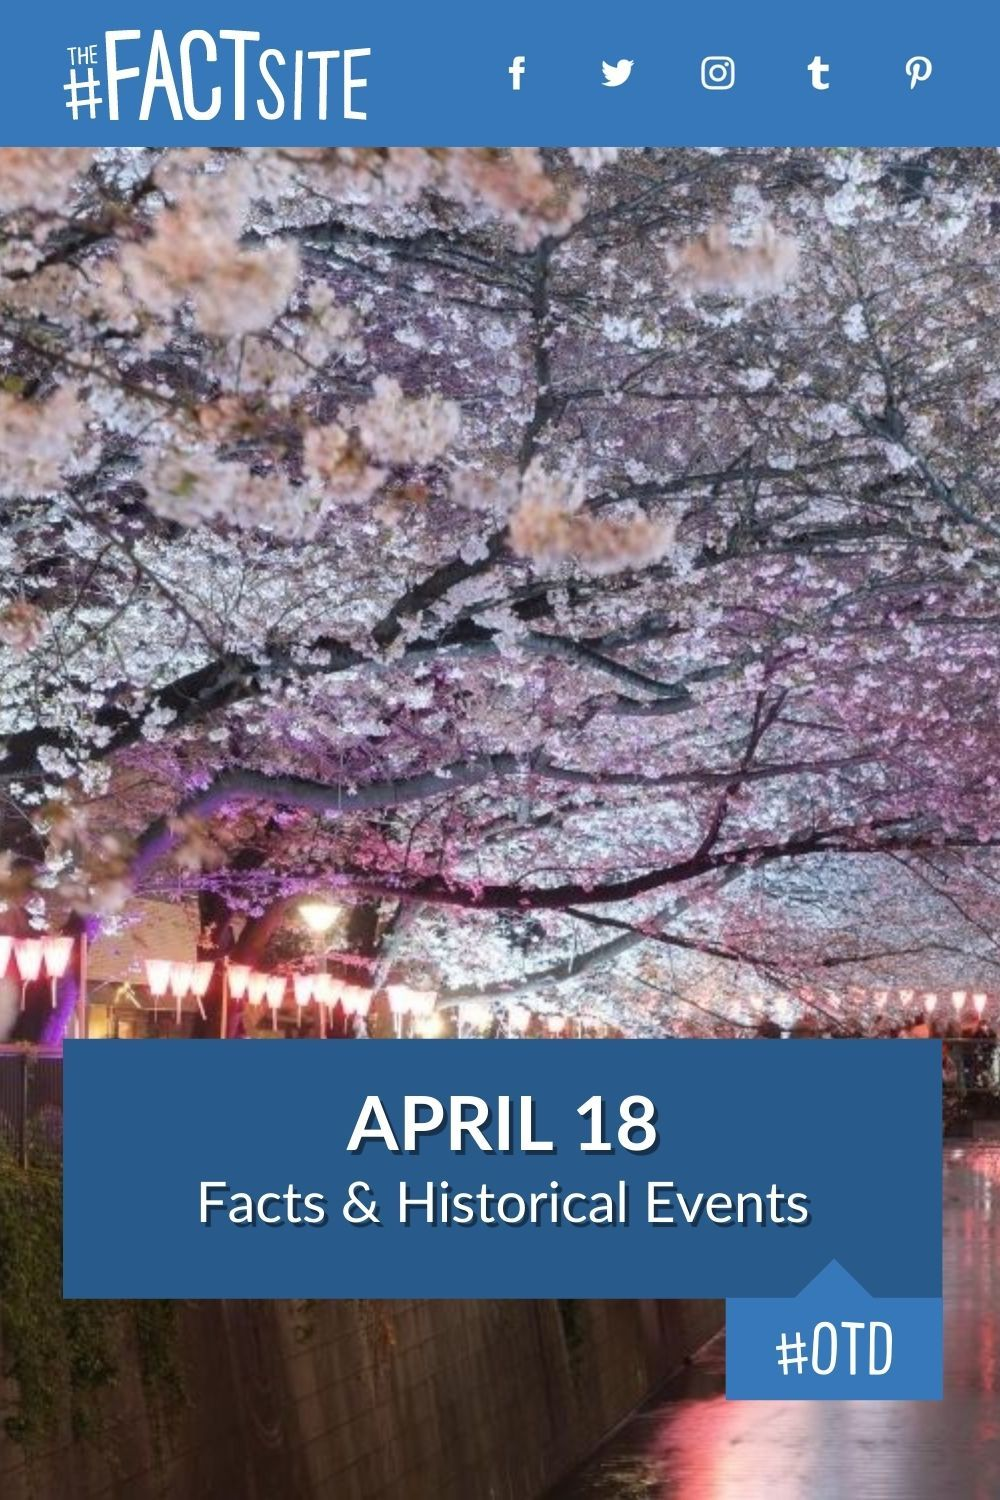 Facts & Historic Events That Happened on April 18